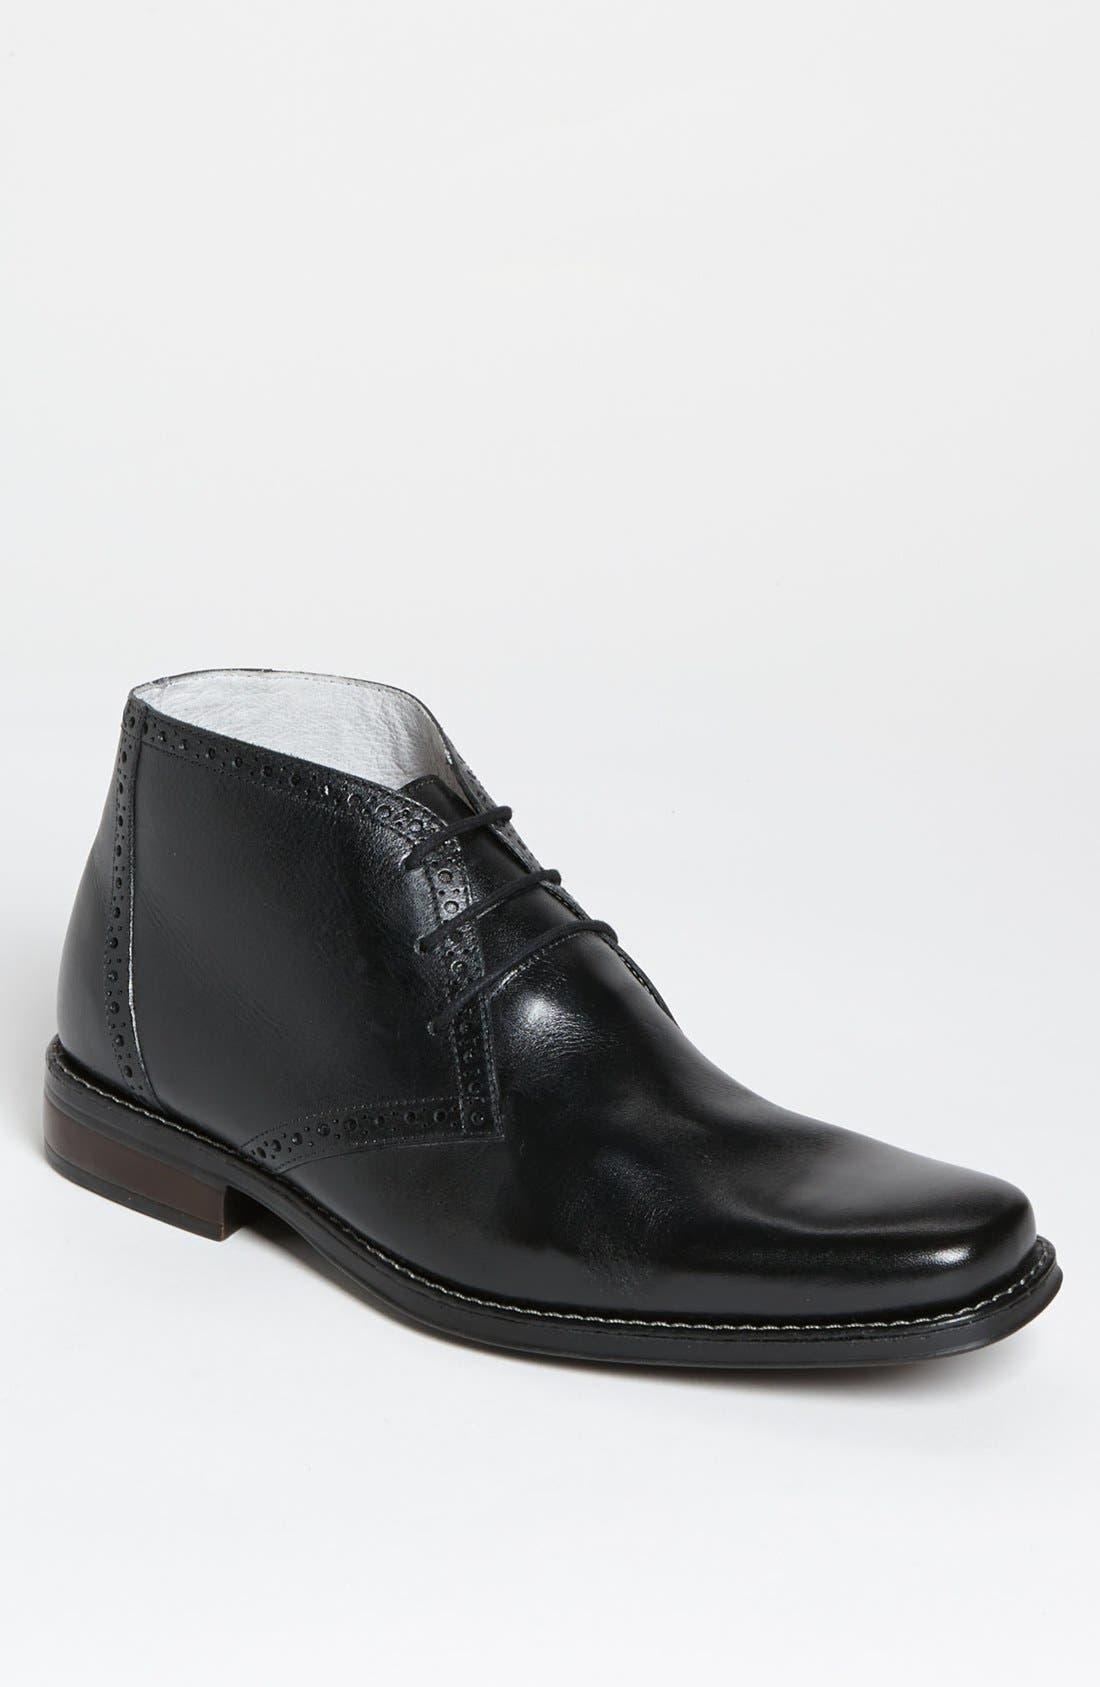 Alternate Image 1 Selected - Sandro Moscoloni 'Grant' Chukka Boot